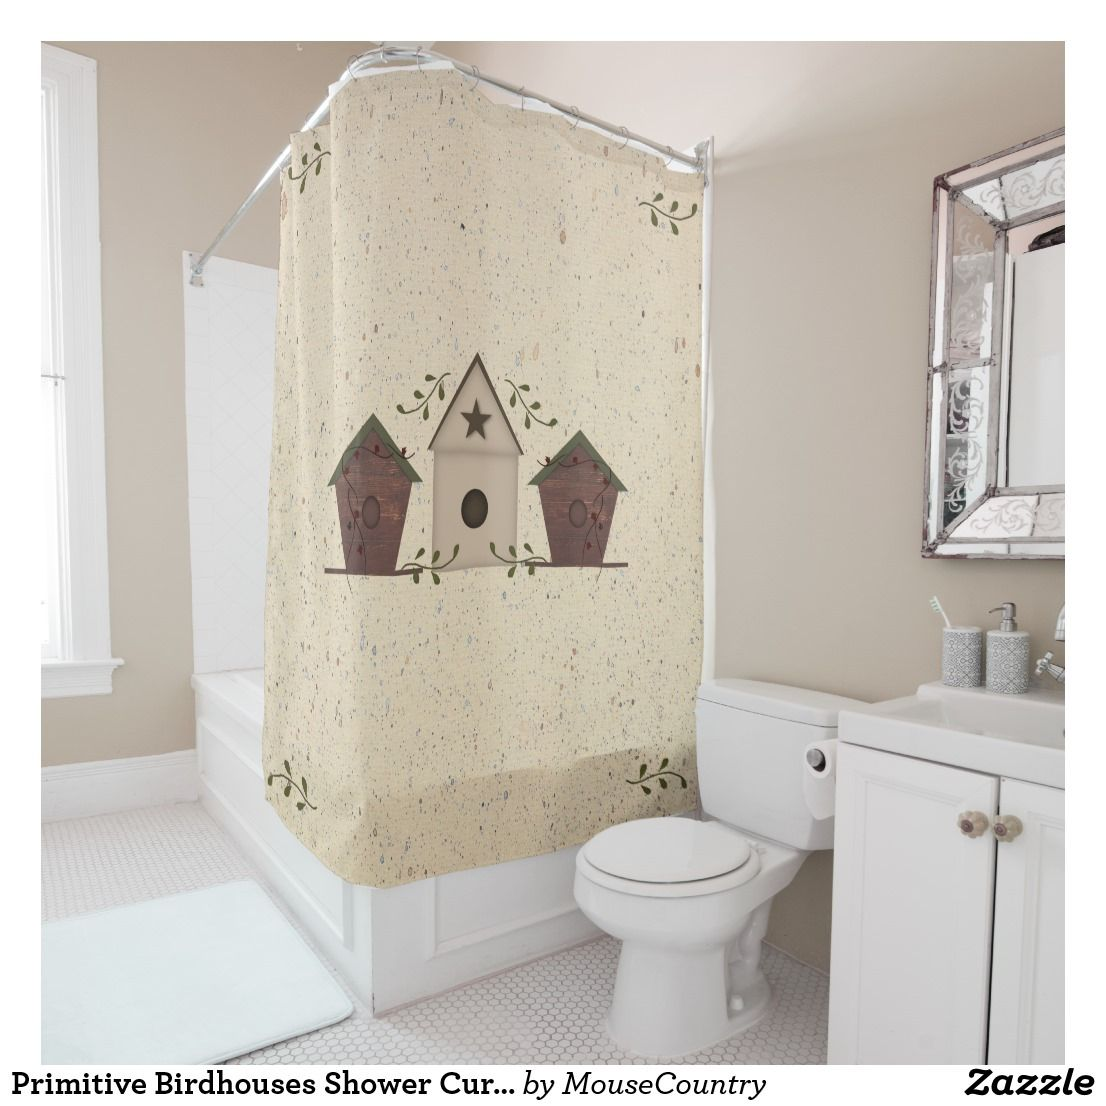 Primitive Birdhouses Shower Curtain Lovely Showercurtains Bathroomshowercurtains Zazzleshowercurtain ShowercurtainZazzle